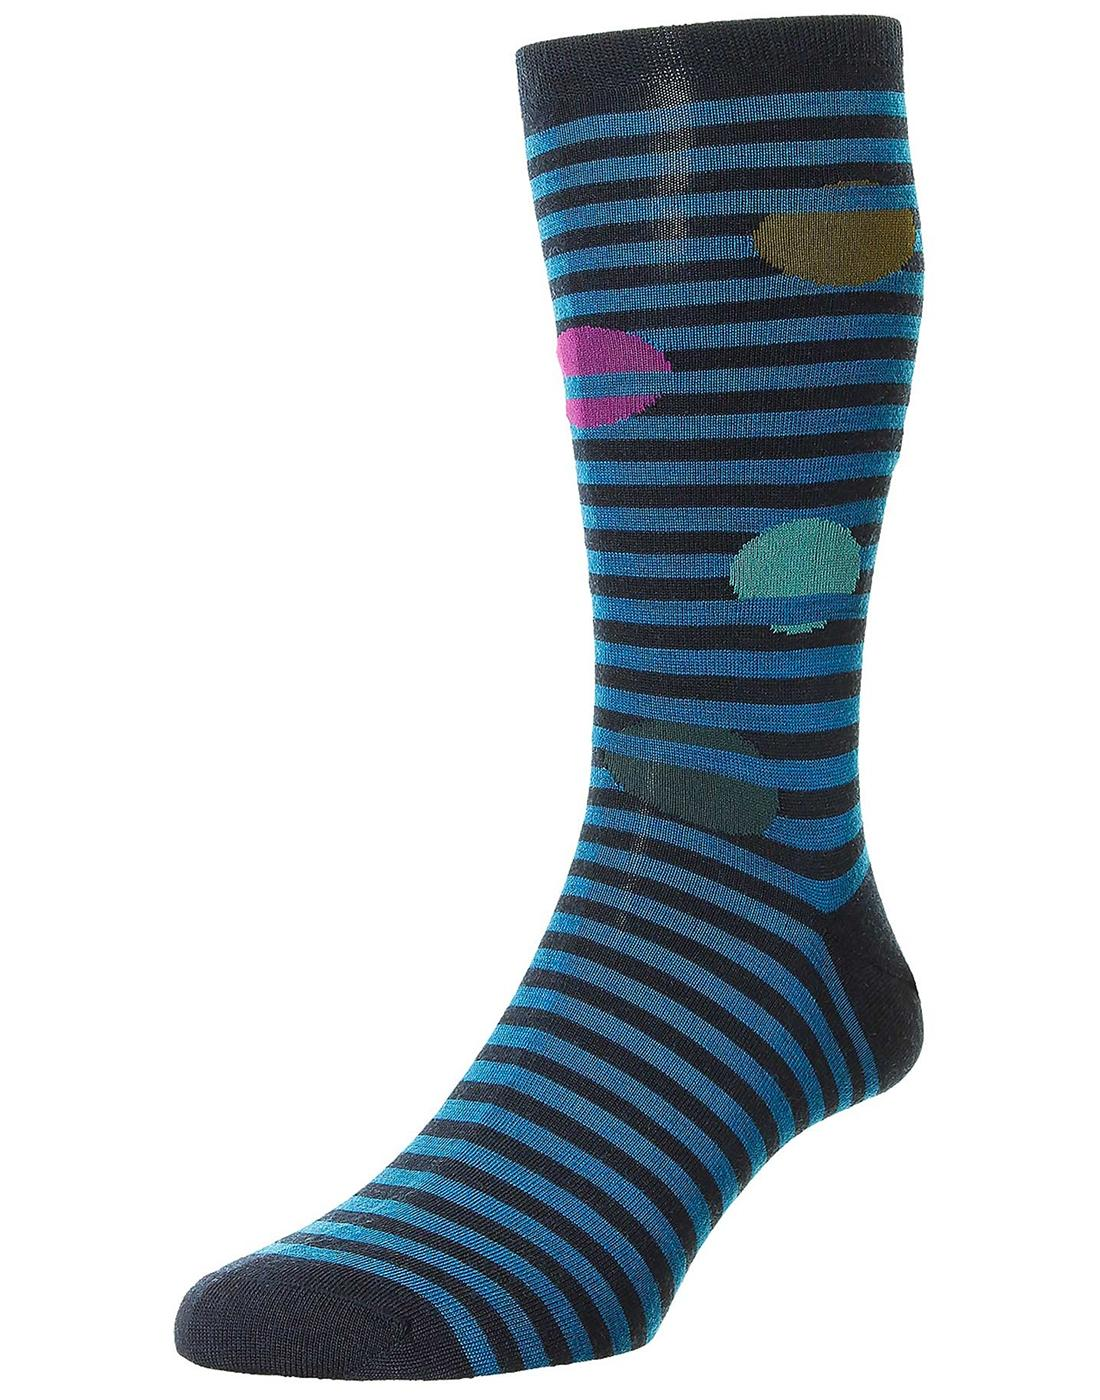 + Berner PANTHERELLA Retro Stripe Merino Socks